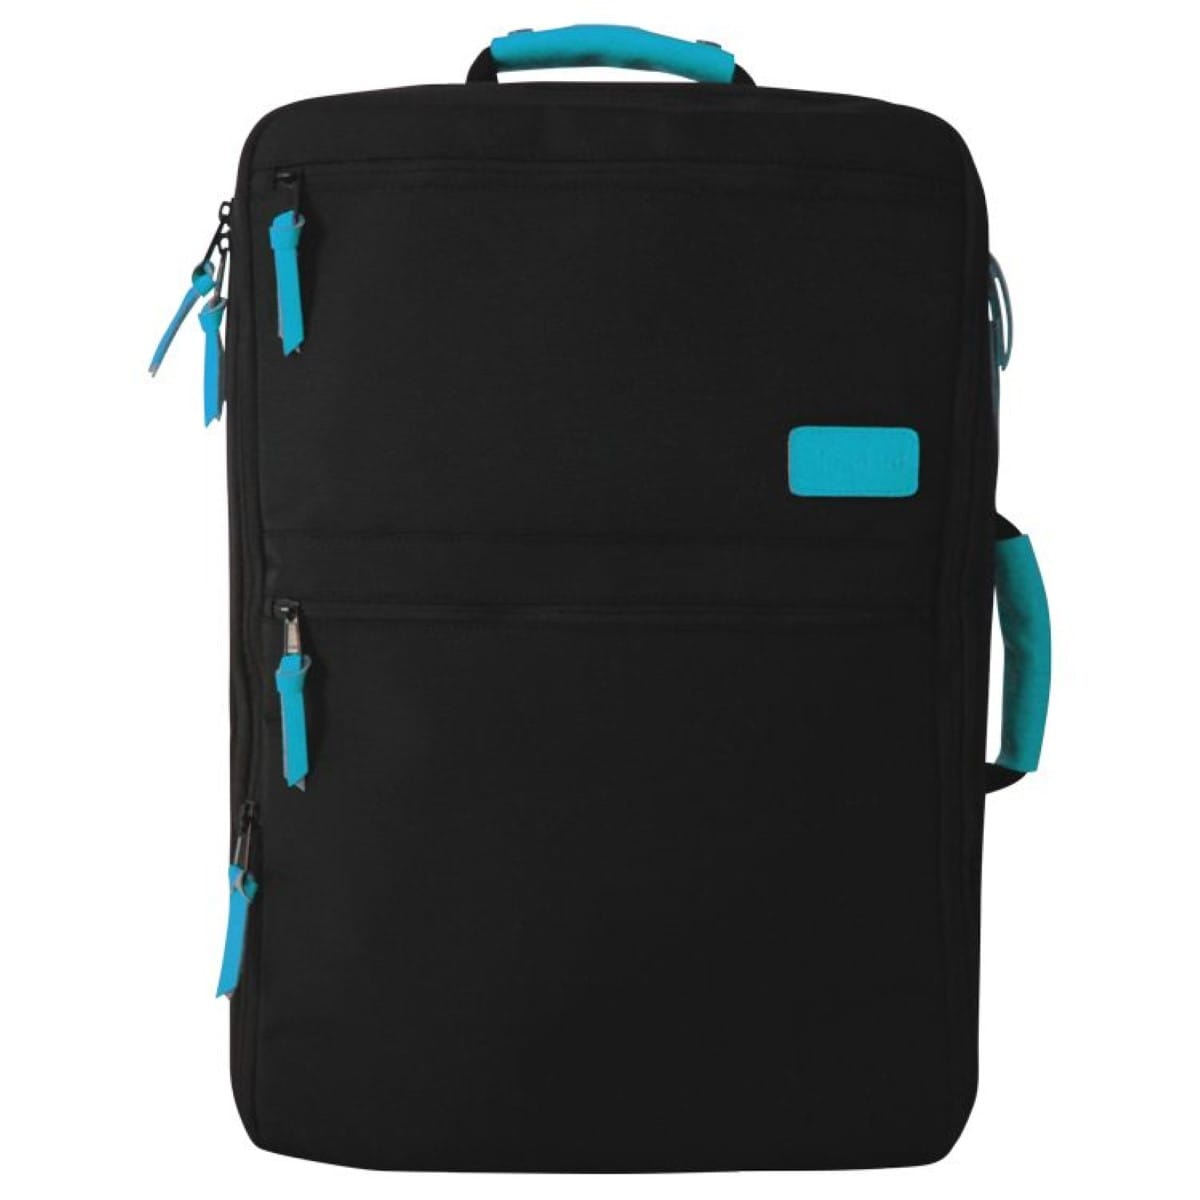 standard luggage backpack